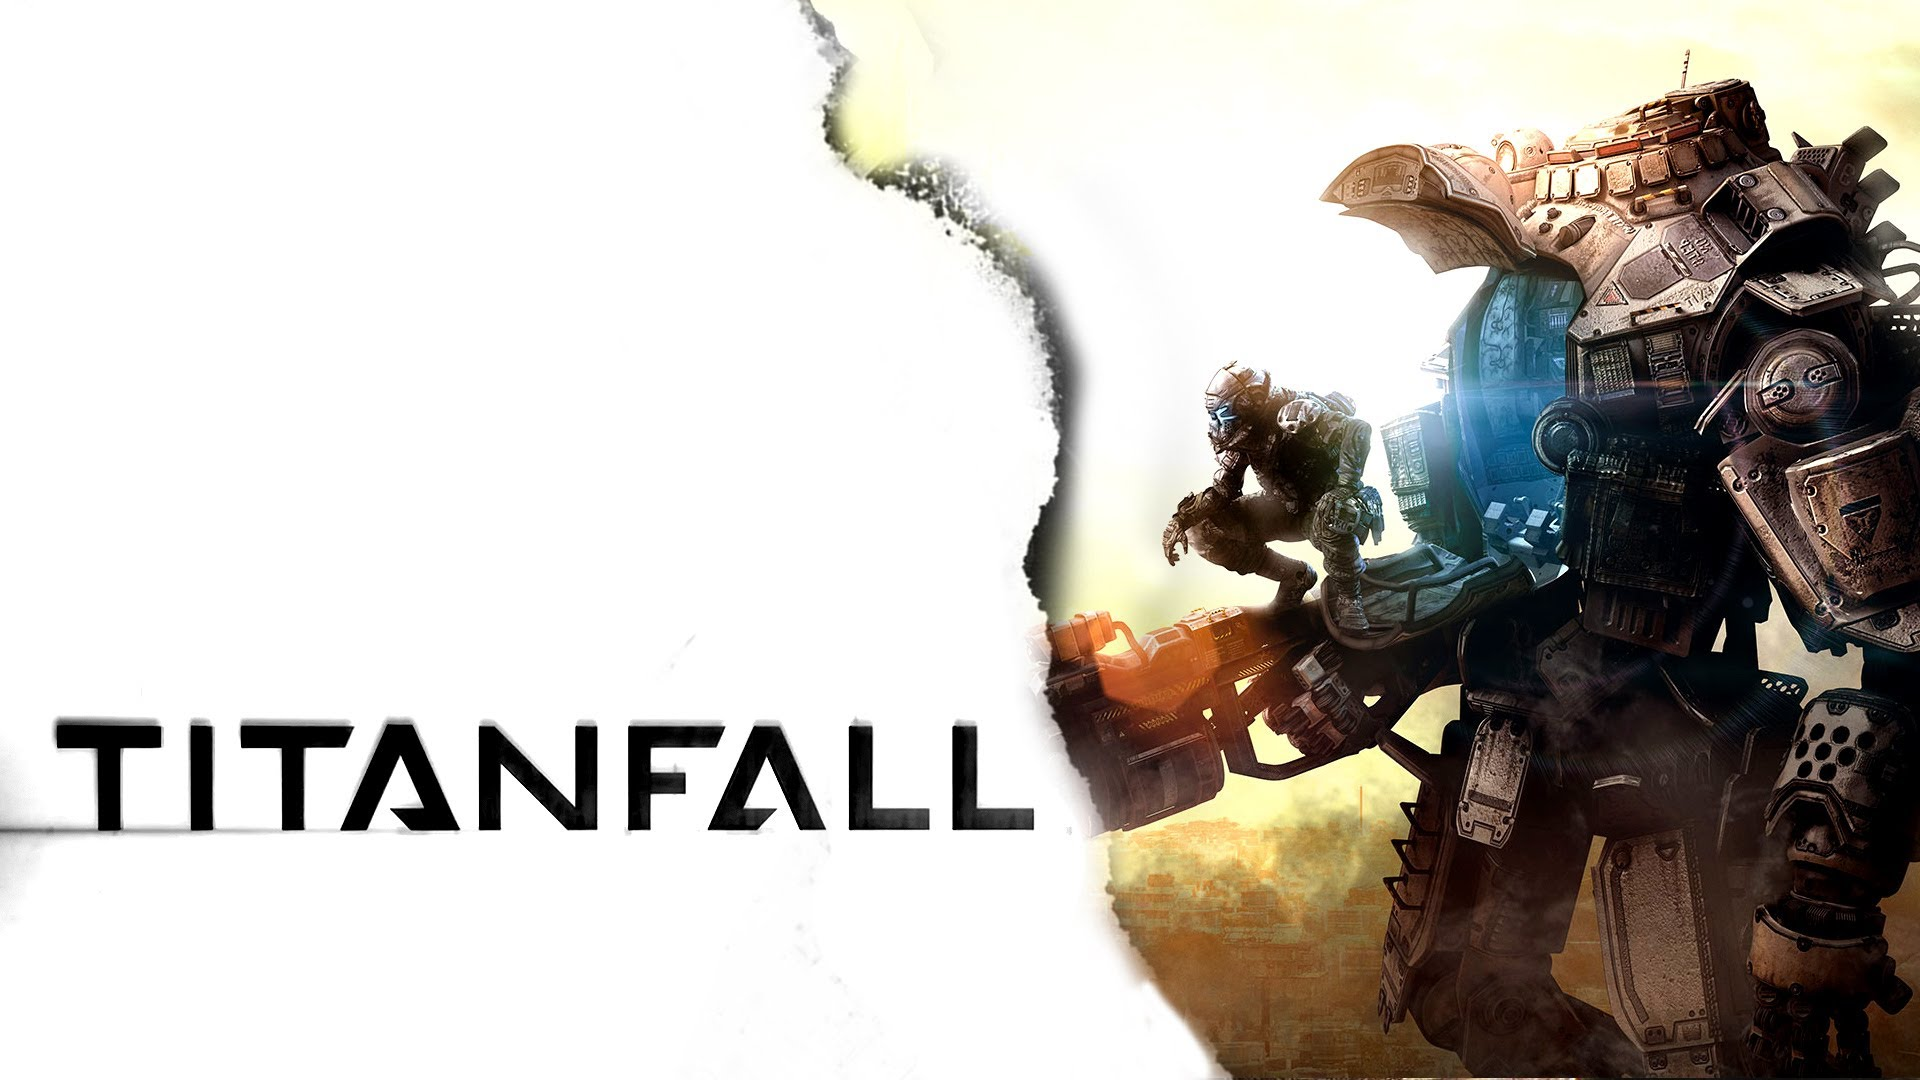 titanfall-game-cover-wallpapers-hd